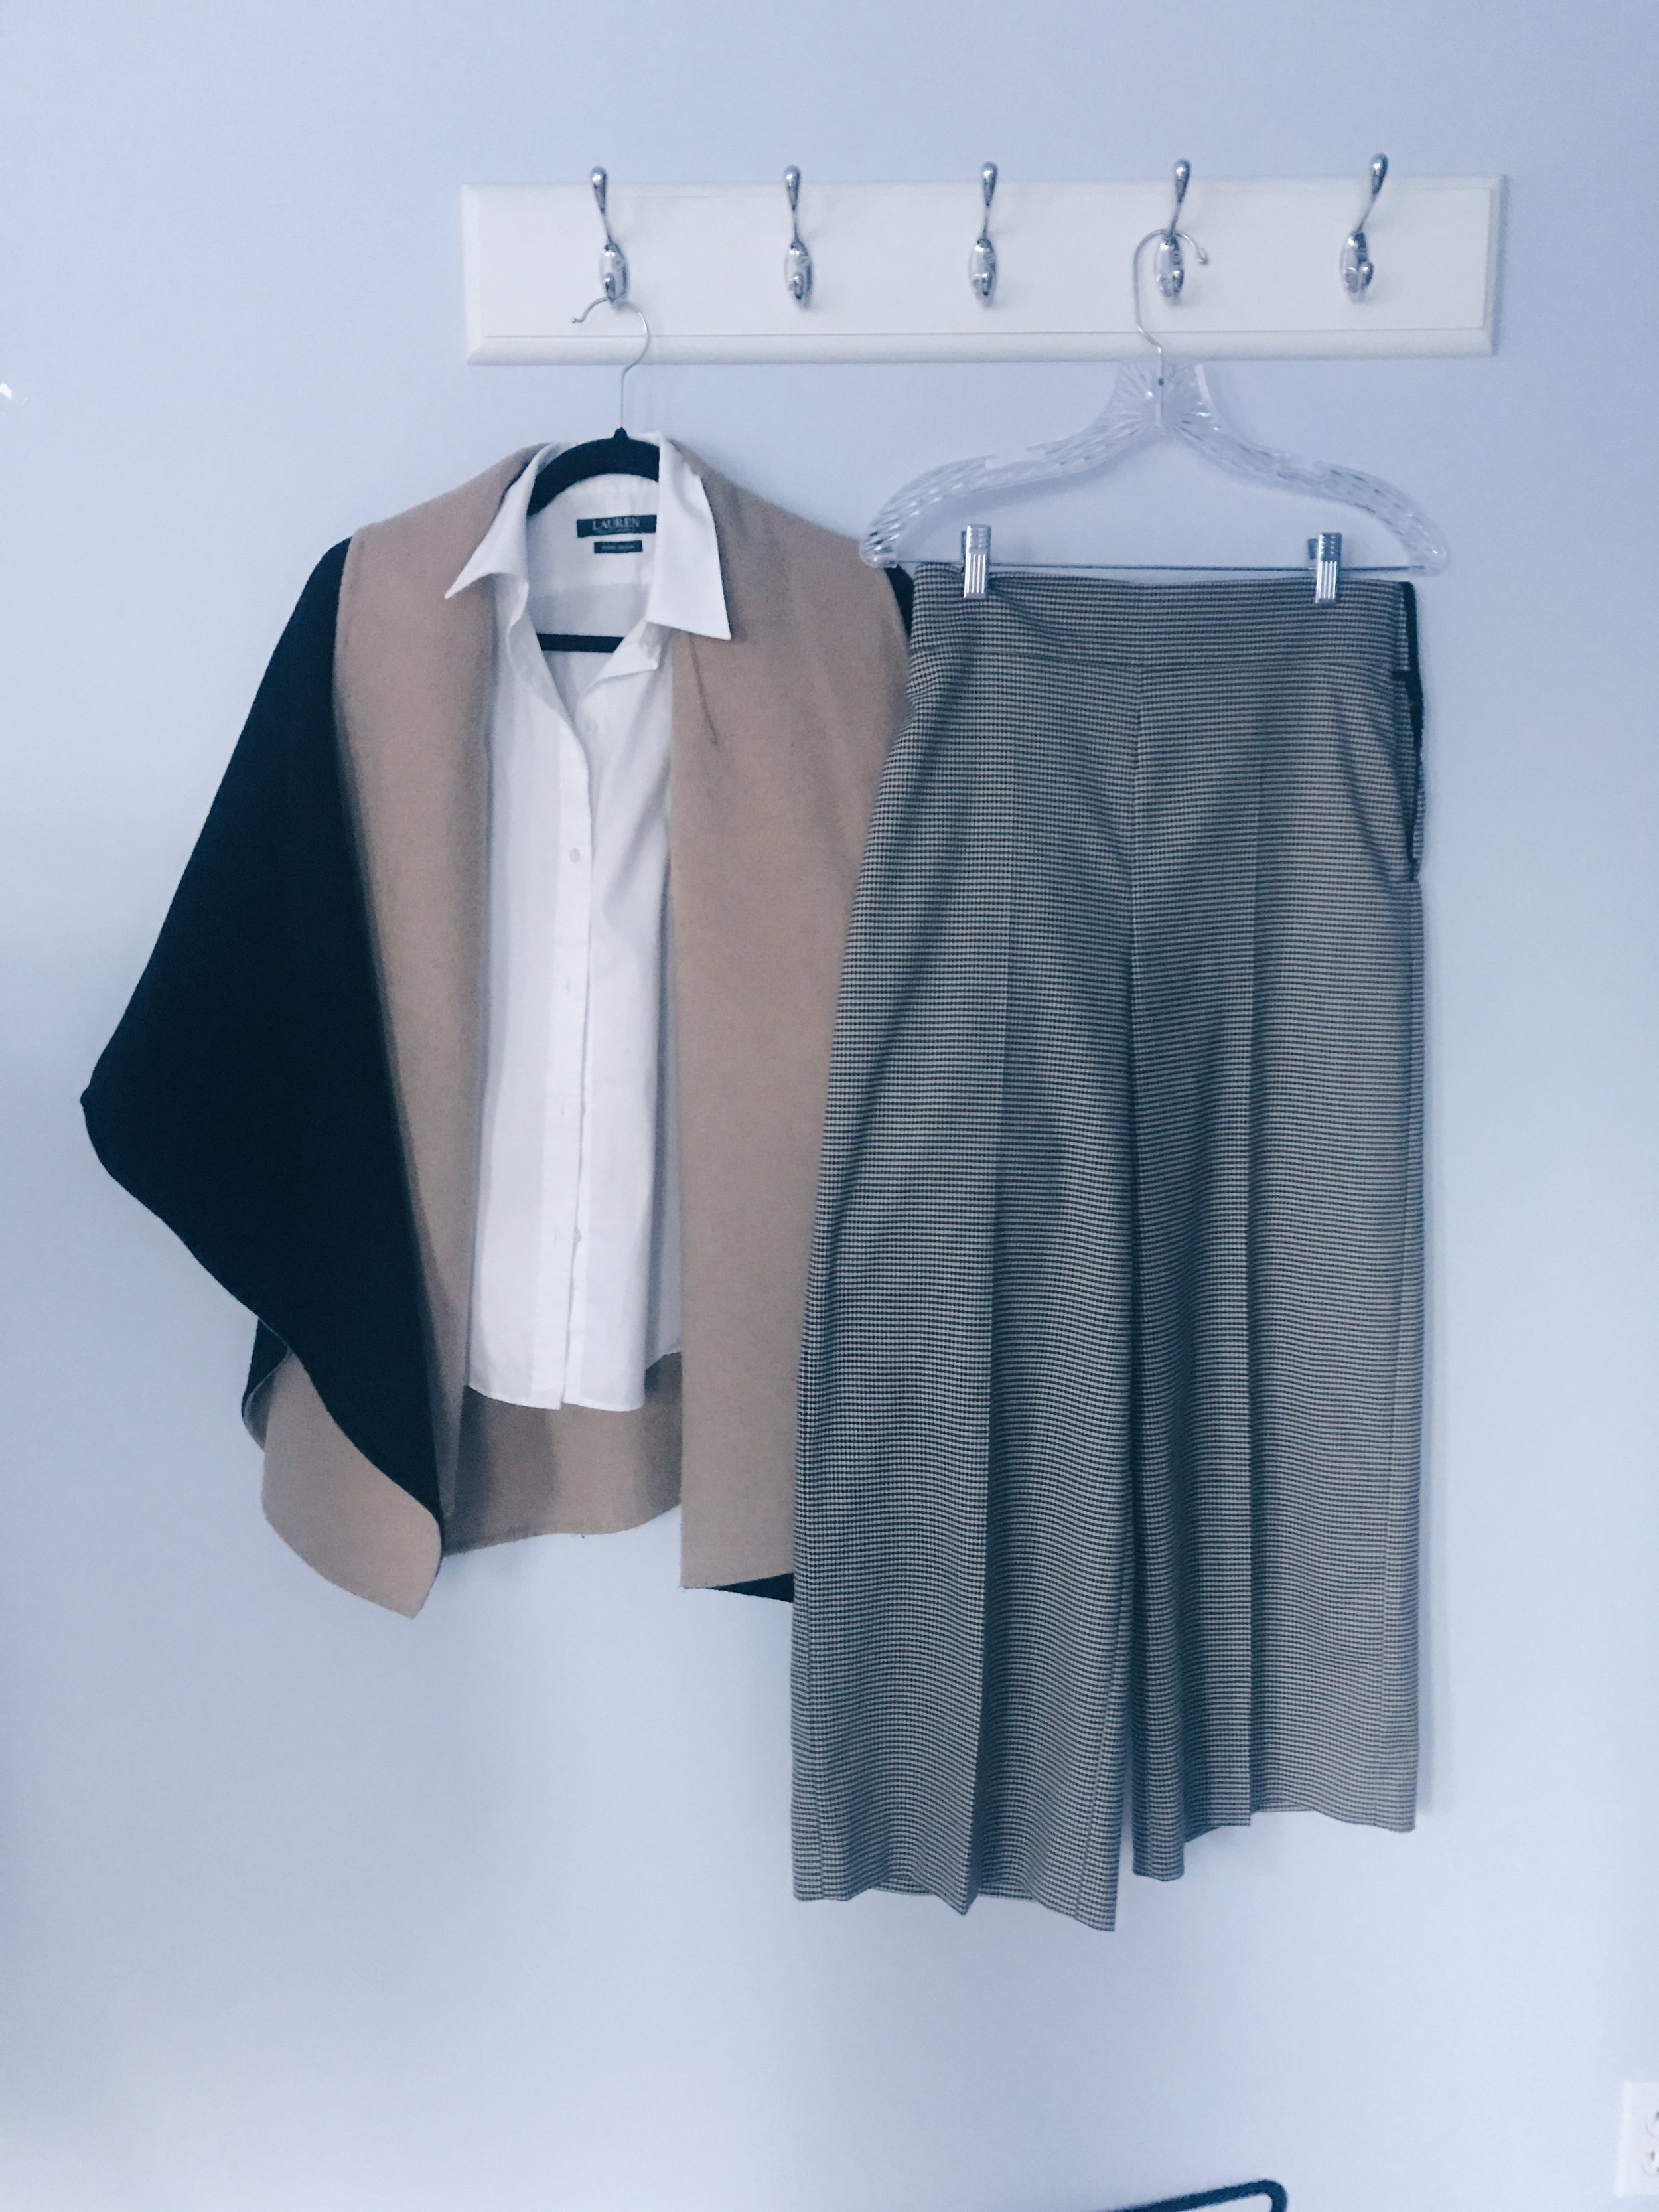 If you want to go for a bold or trendy look, wear the blouse with a pair of flared/wide-leg pants!